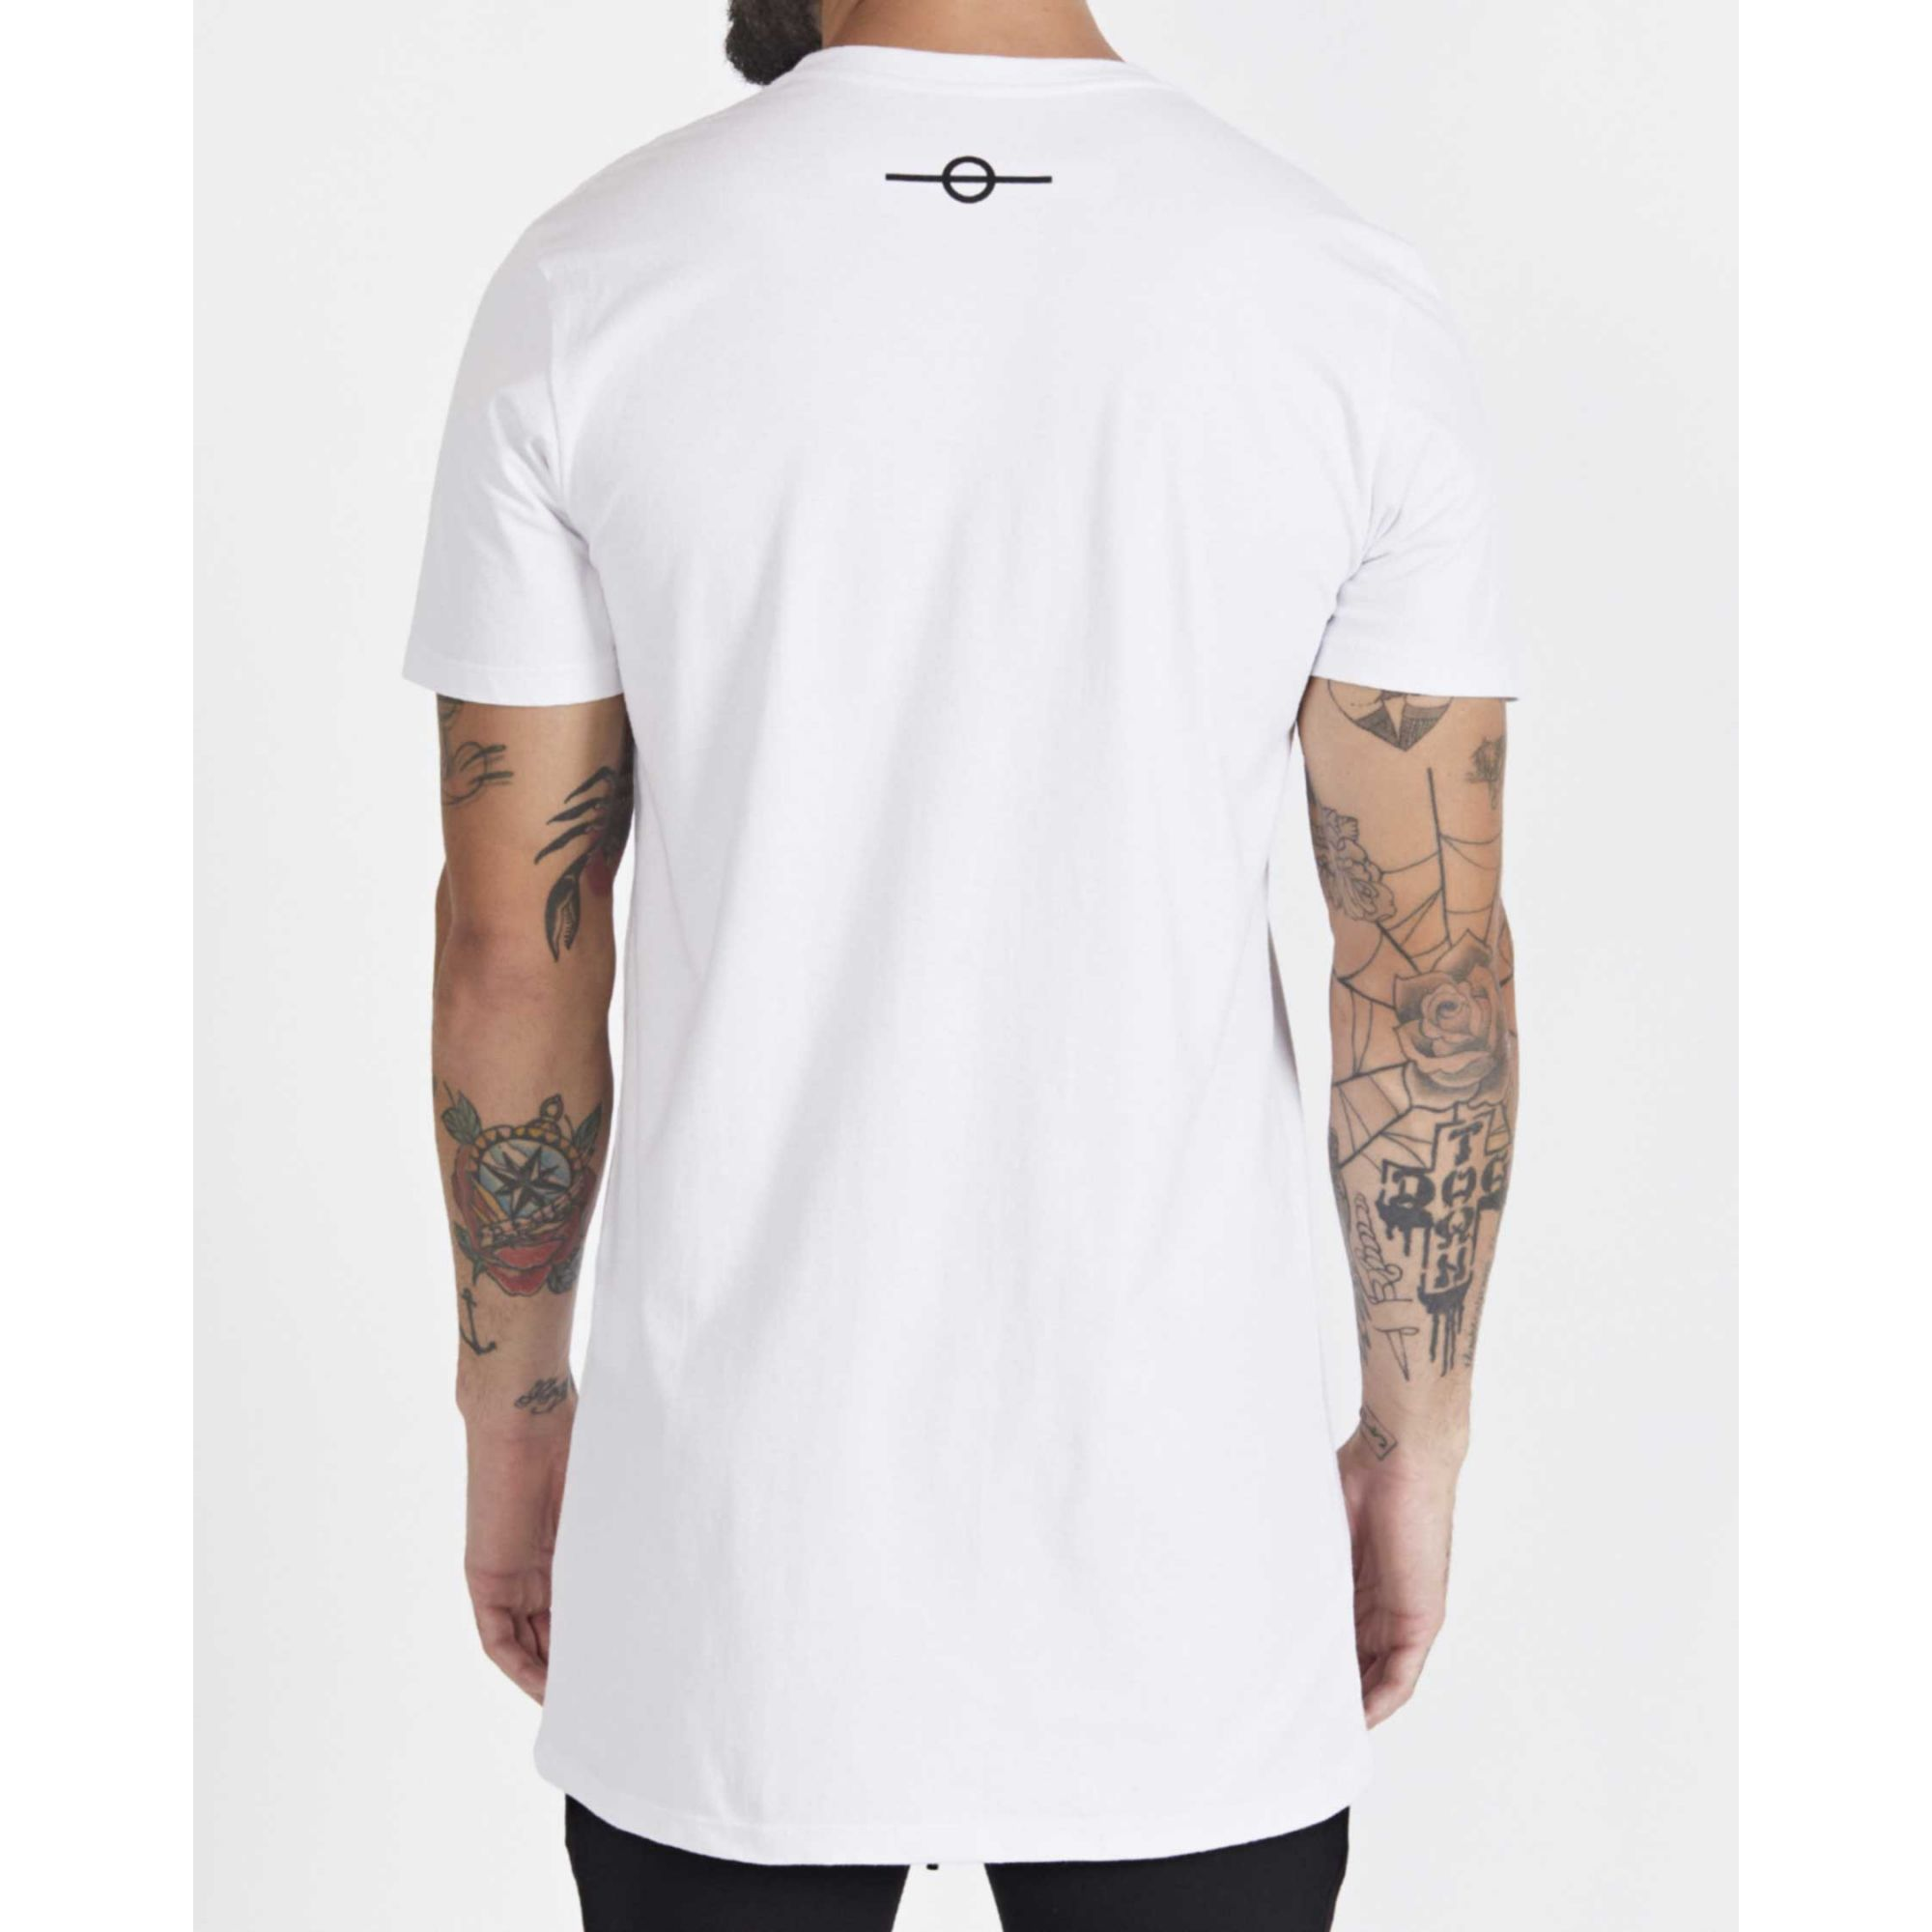 Camiseta Buh Cotton Plaquinha White